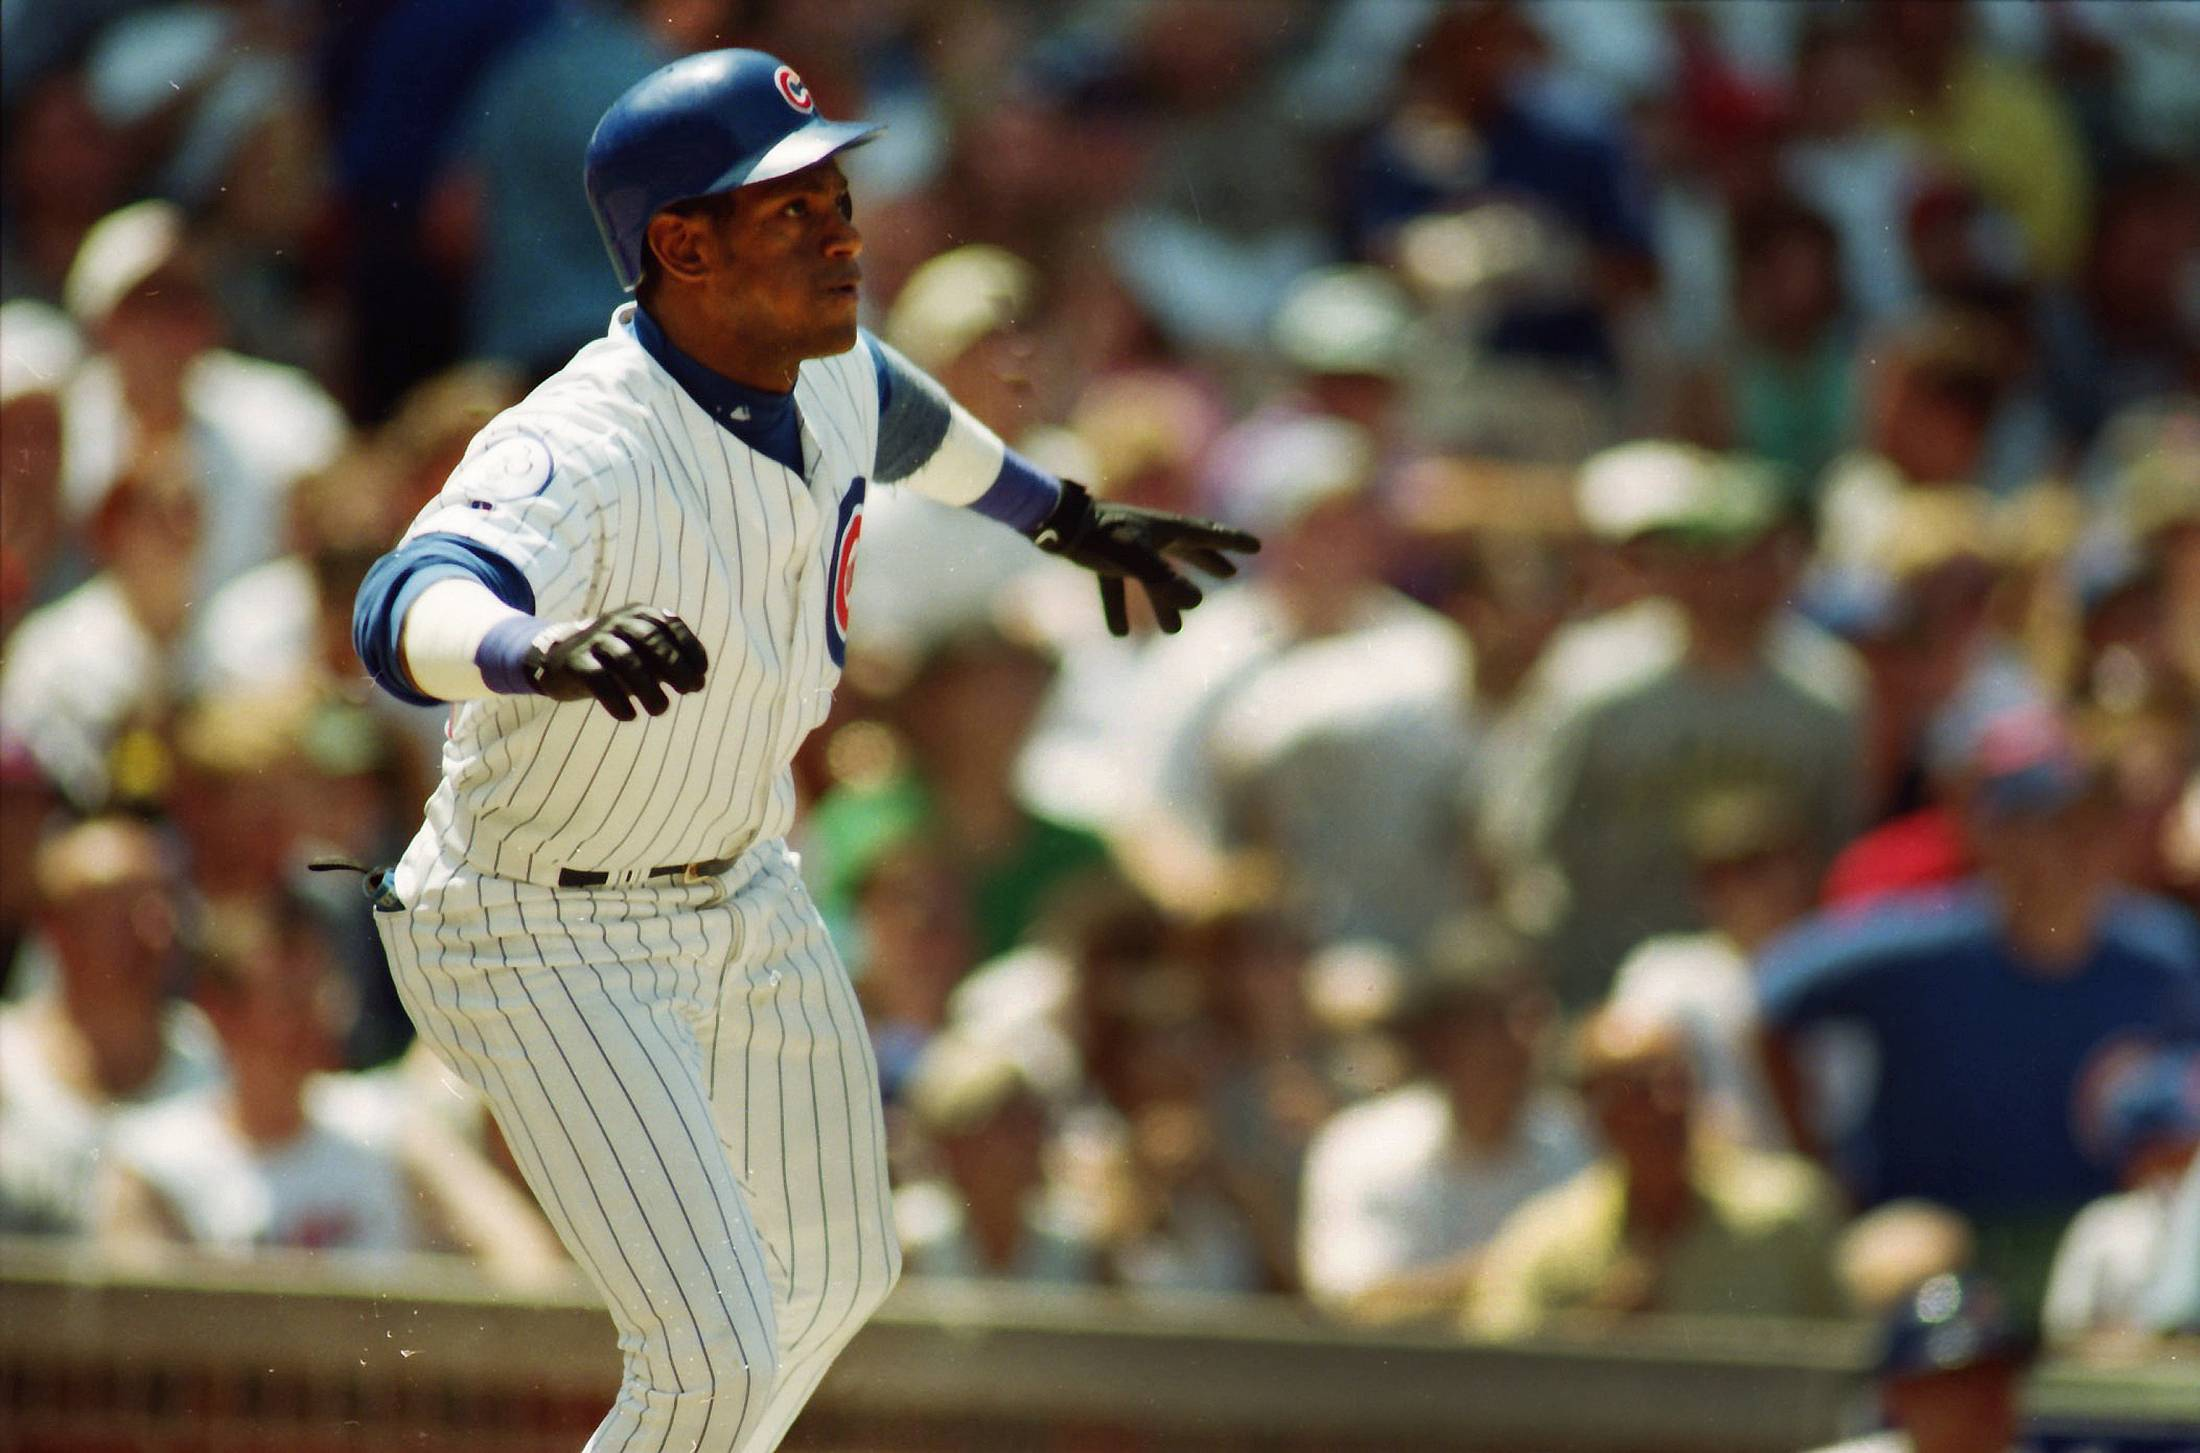 20/20 hindsight on Sammy Sosa's June slugfest for Cubs in 1998